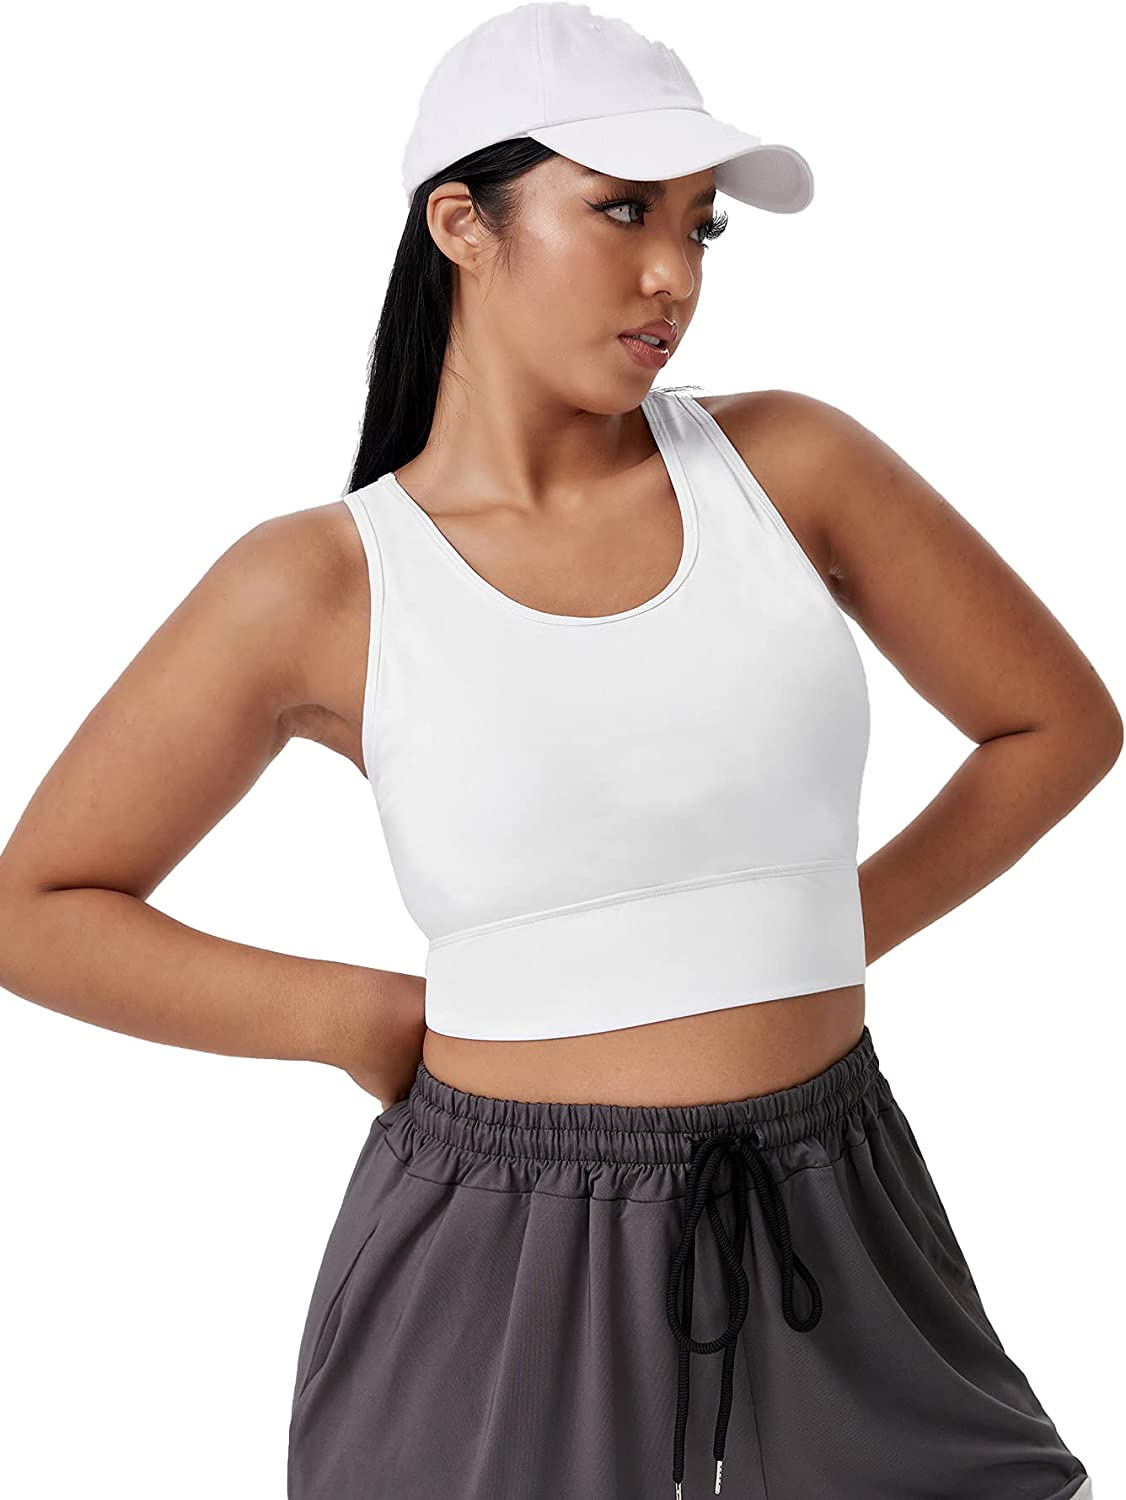 MakeMeChic Women's Plus Size Cut Out Criss Cross Sports Bra with Removable Pads